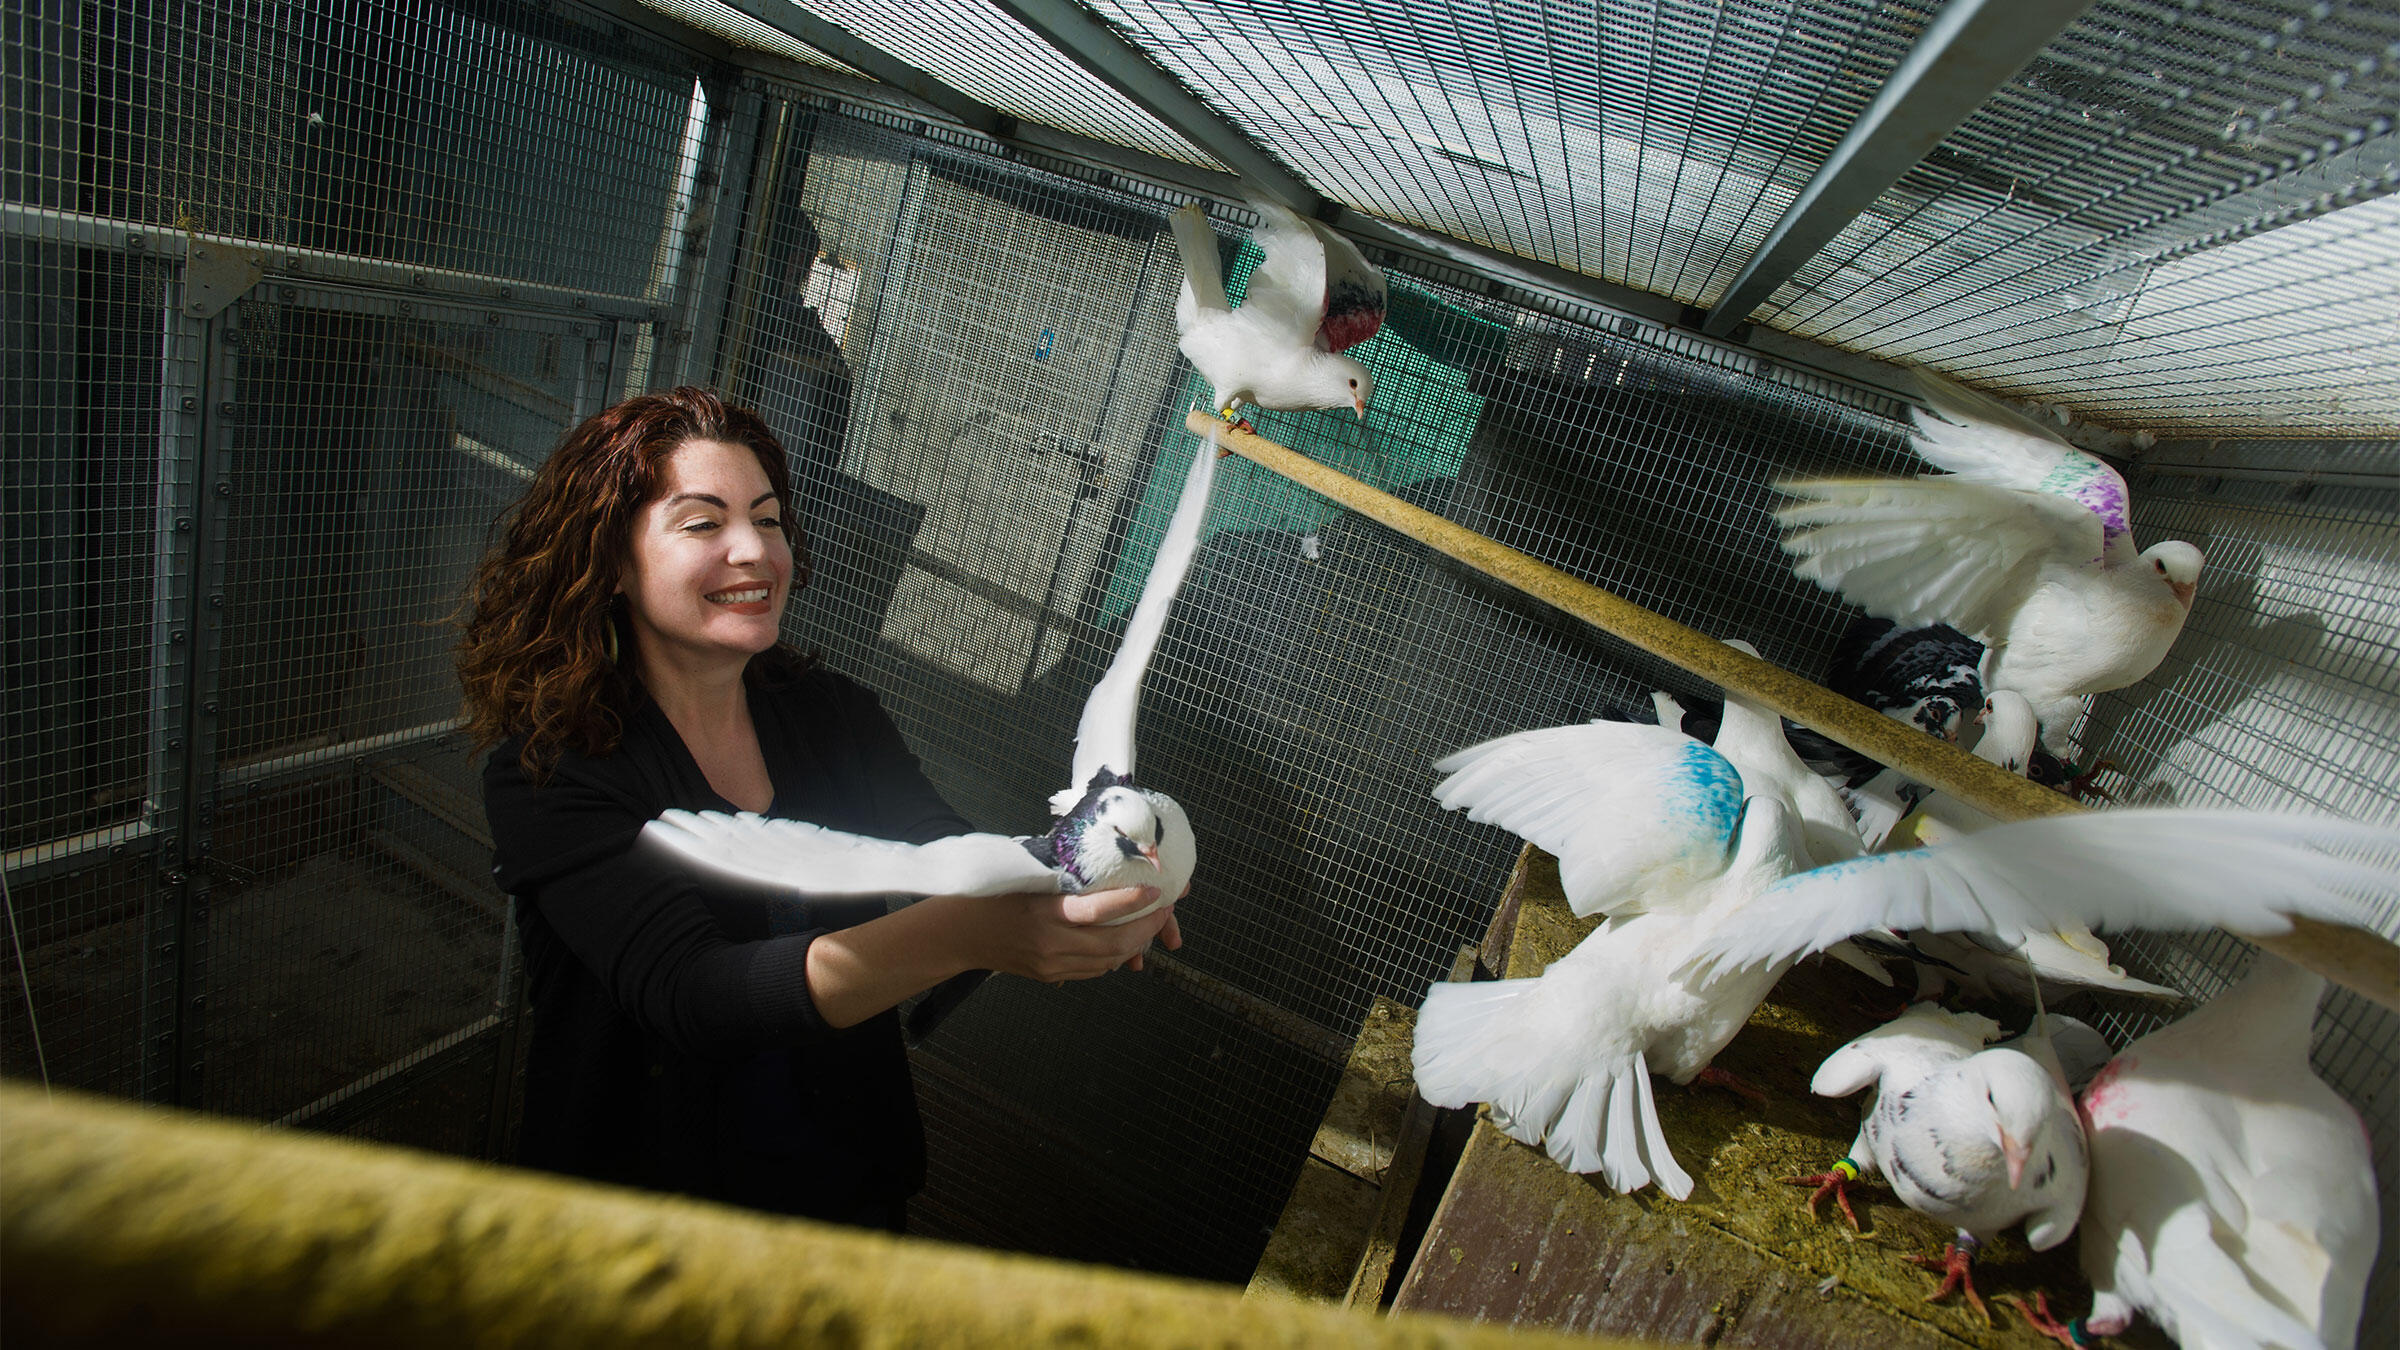 Rebecca Calisi was a co-author on the new study that found varying gene expressions among male and female Rock Pigeons. The results could have huge implications for future research. Karin Higgins/UC Davis